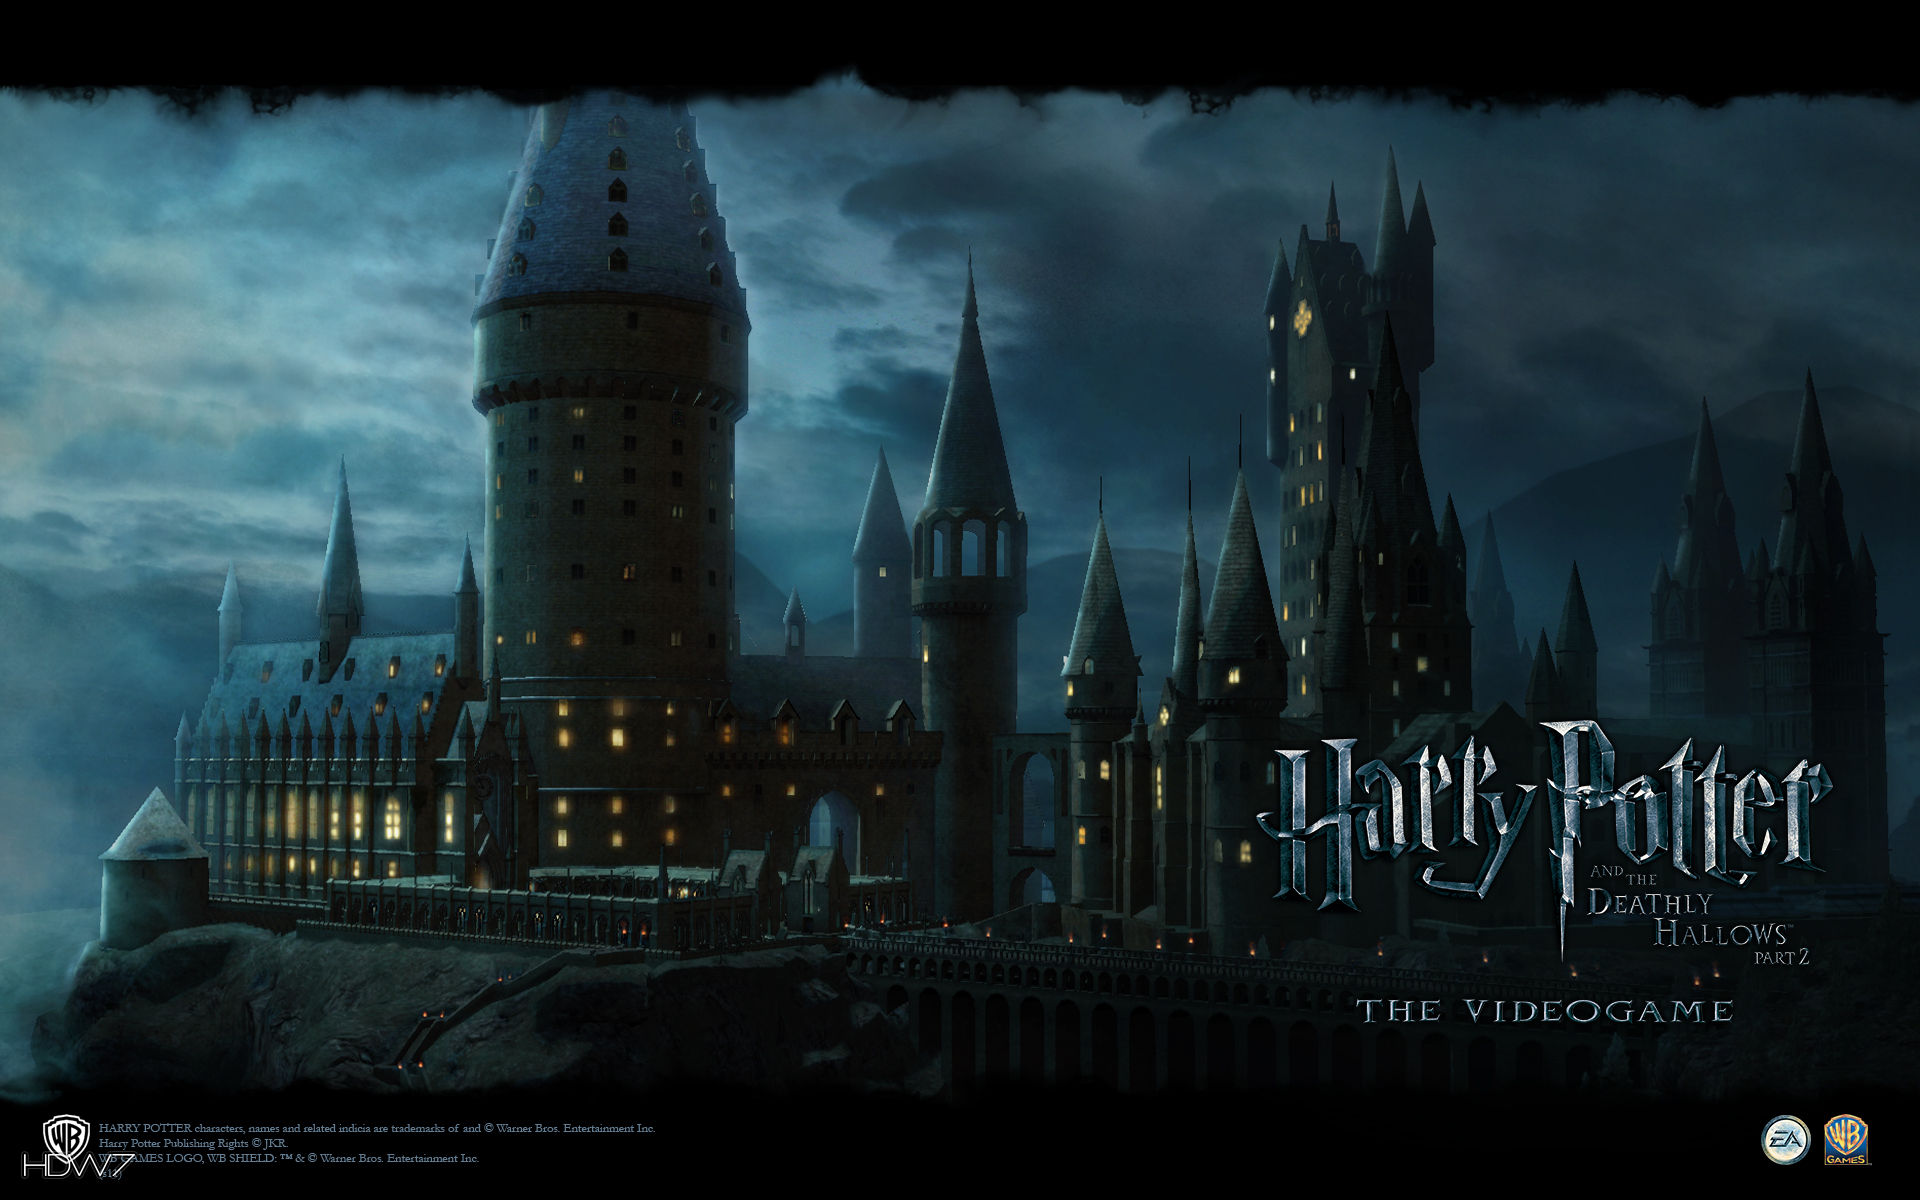 Amazing Wallpaper Harry Potter Deathly Hallows - harry-potter-and-the-deathly-hallows-hogwarts-widescreen-wallpaper  Best Photo Reference_30975.jpg